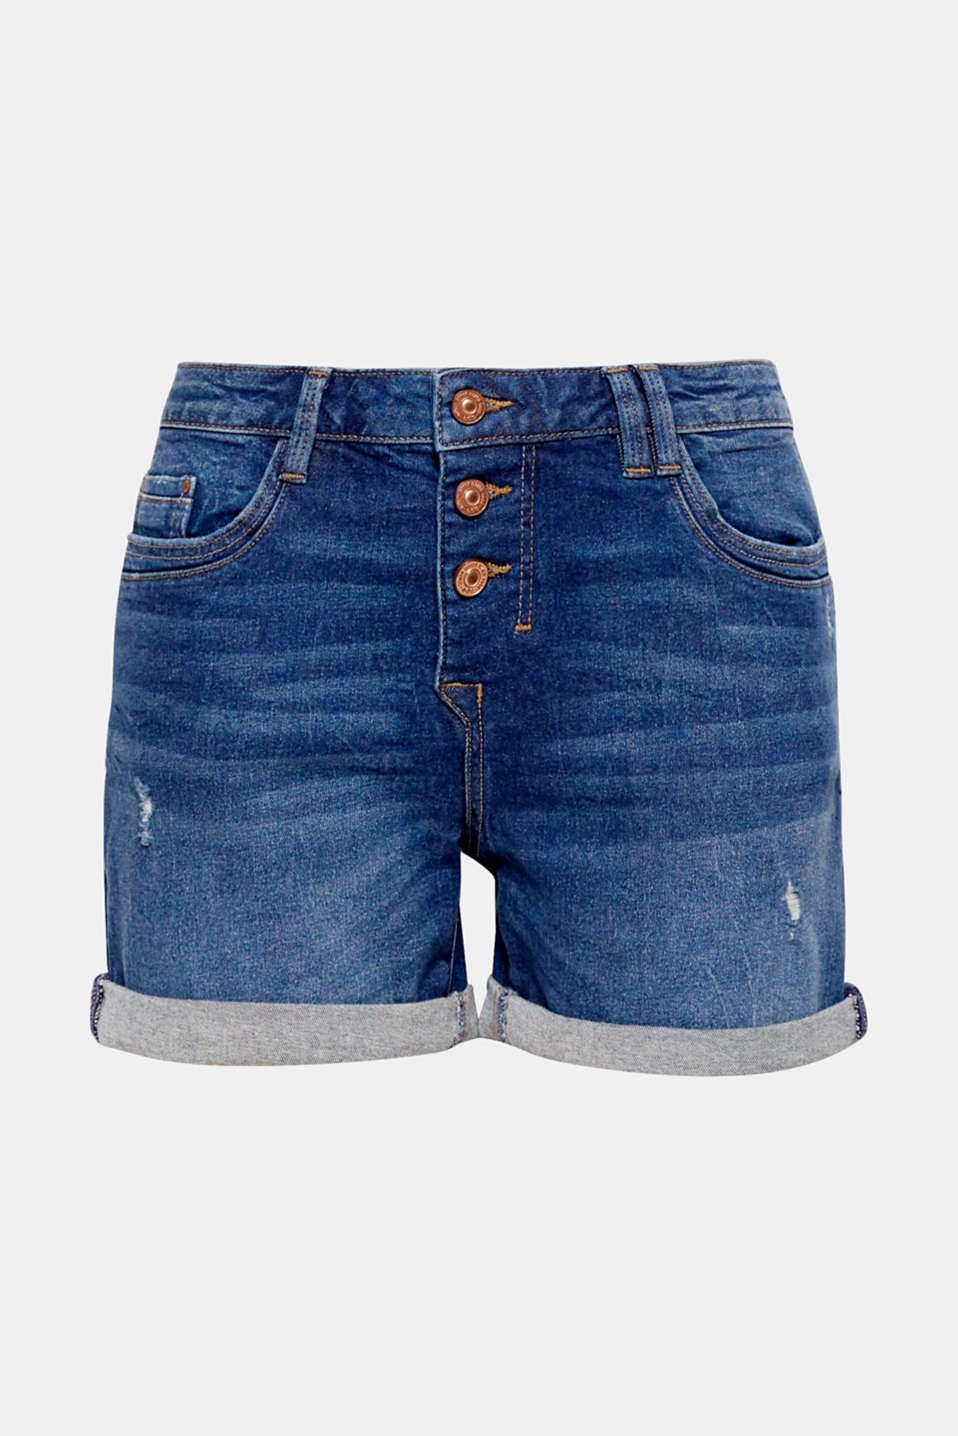 Your summer must-have: denim shorts in a vintage look with a button placket and flexible roll-up hems.